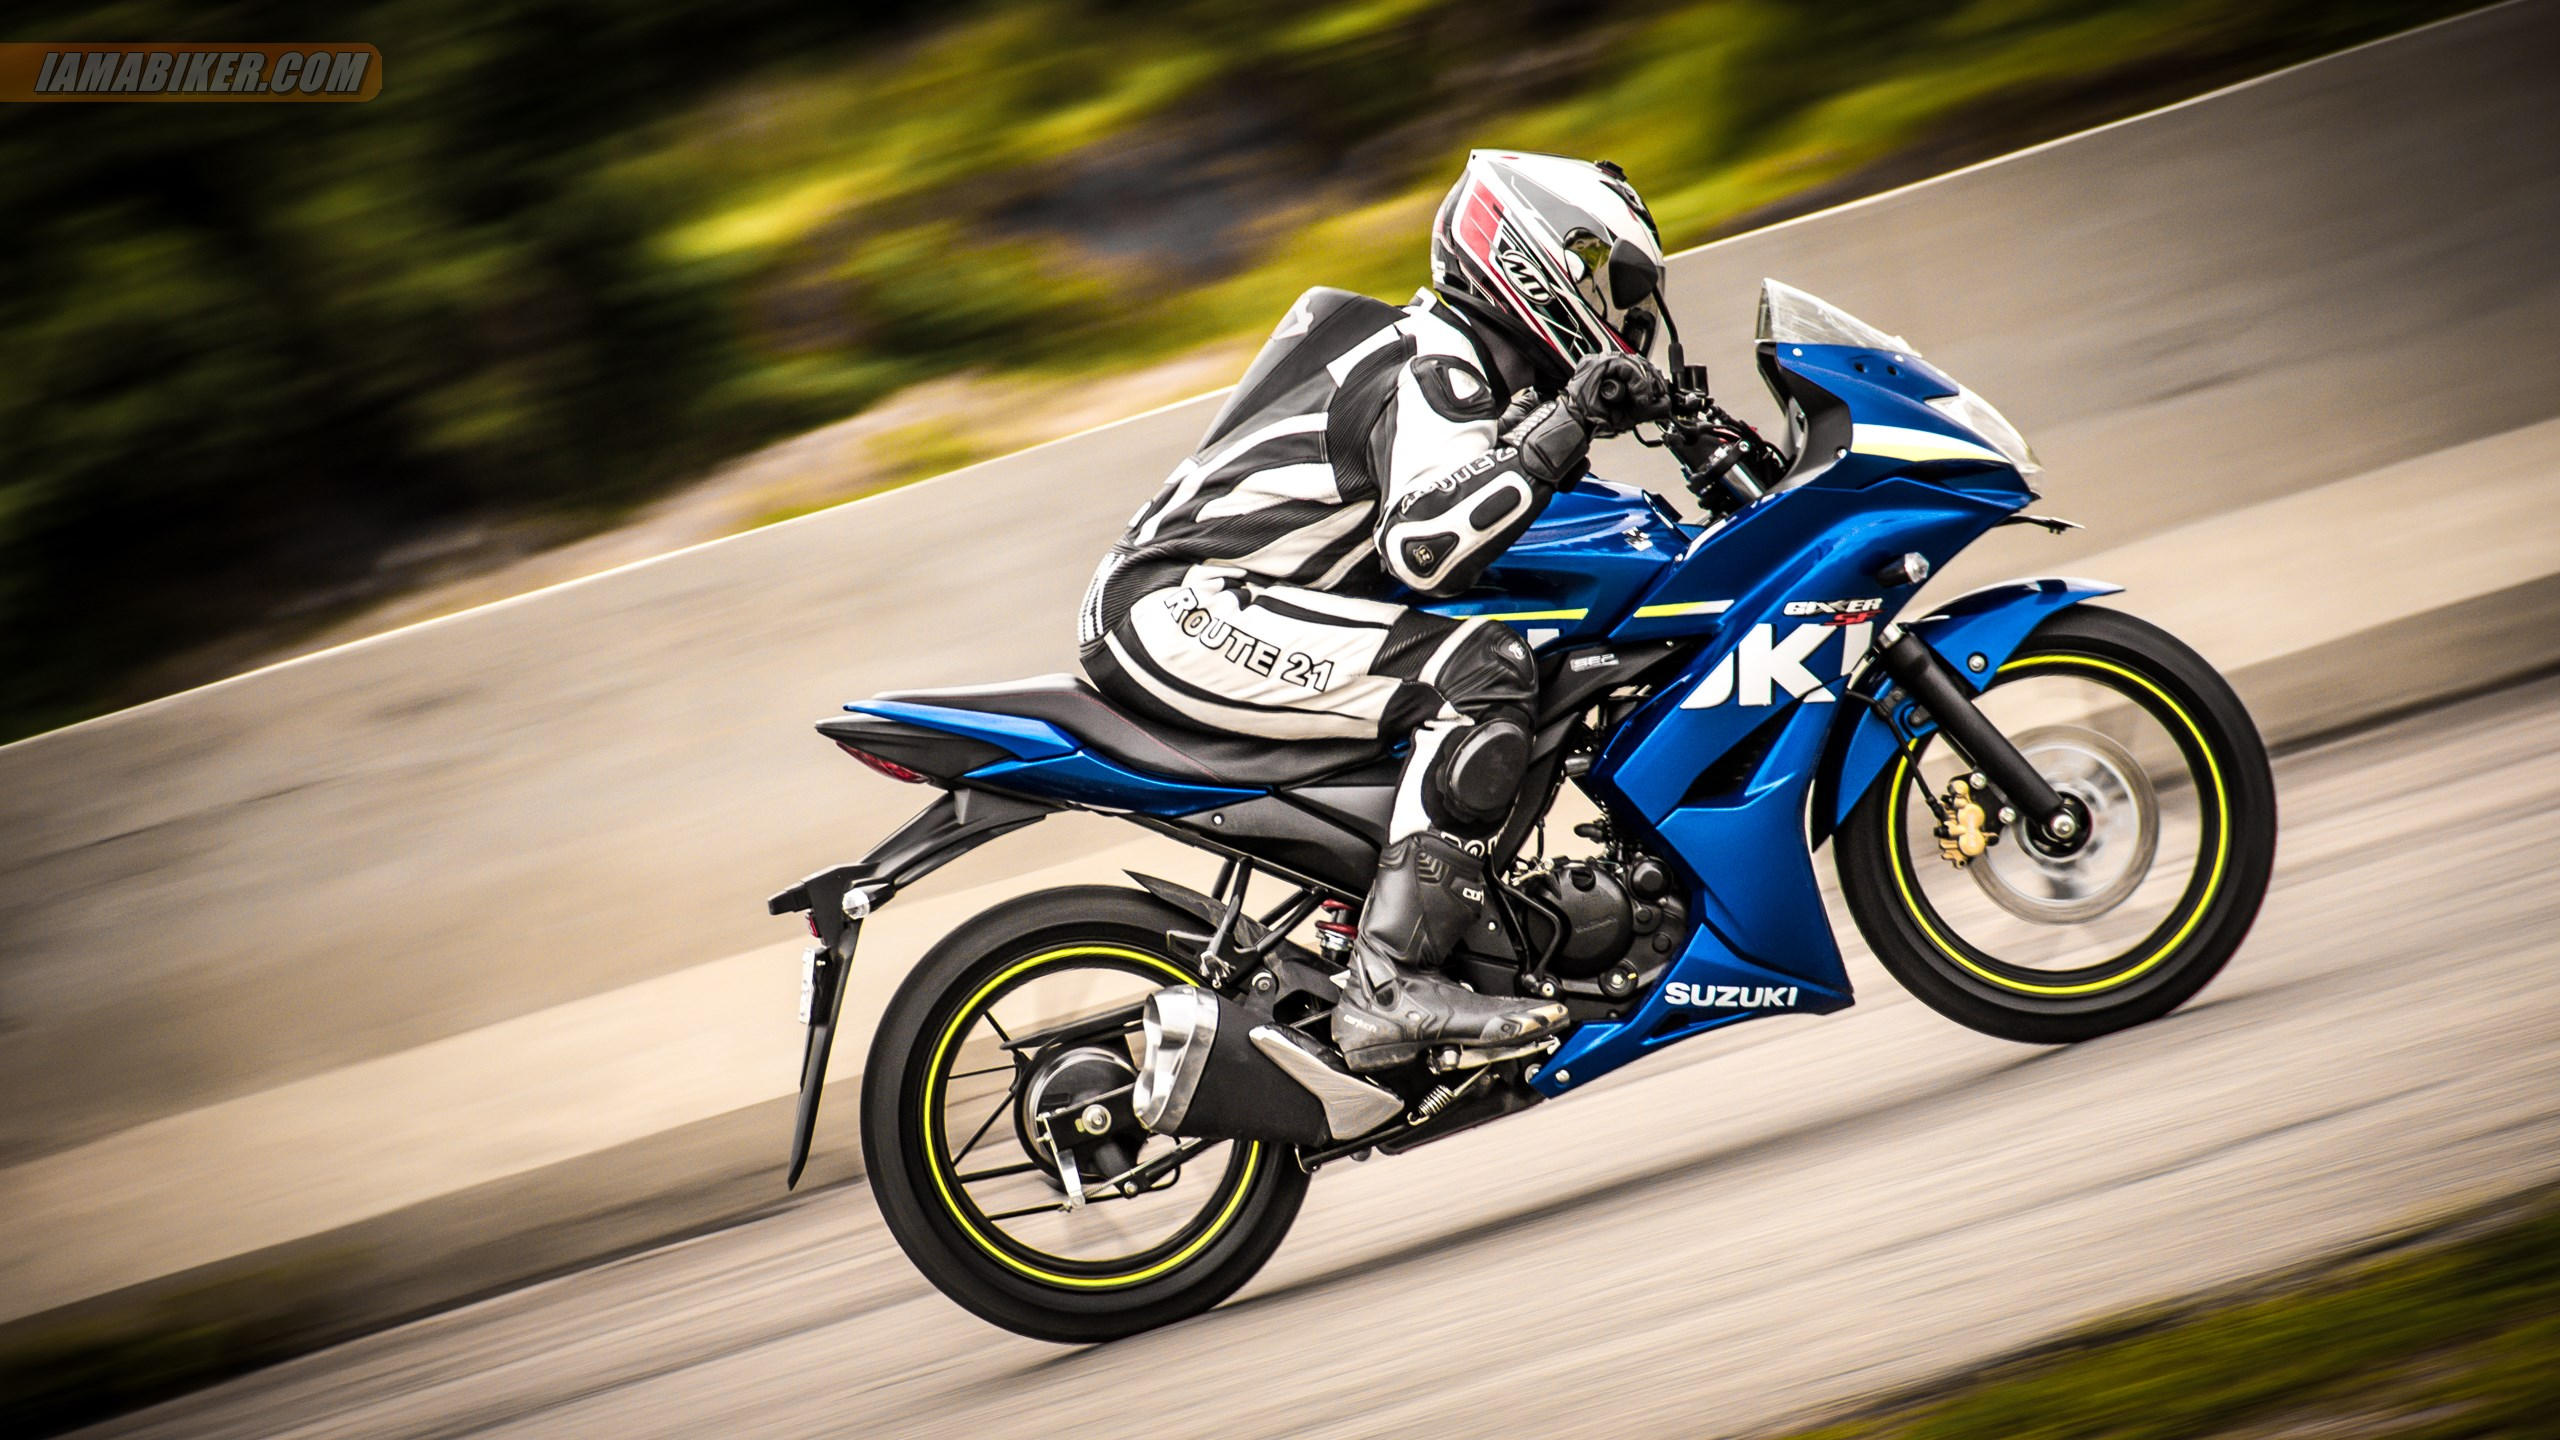 Suzuki Gixxer SF HD wallpapers